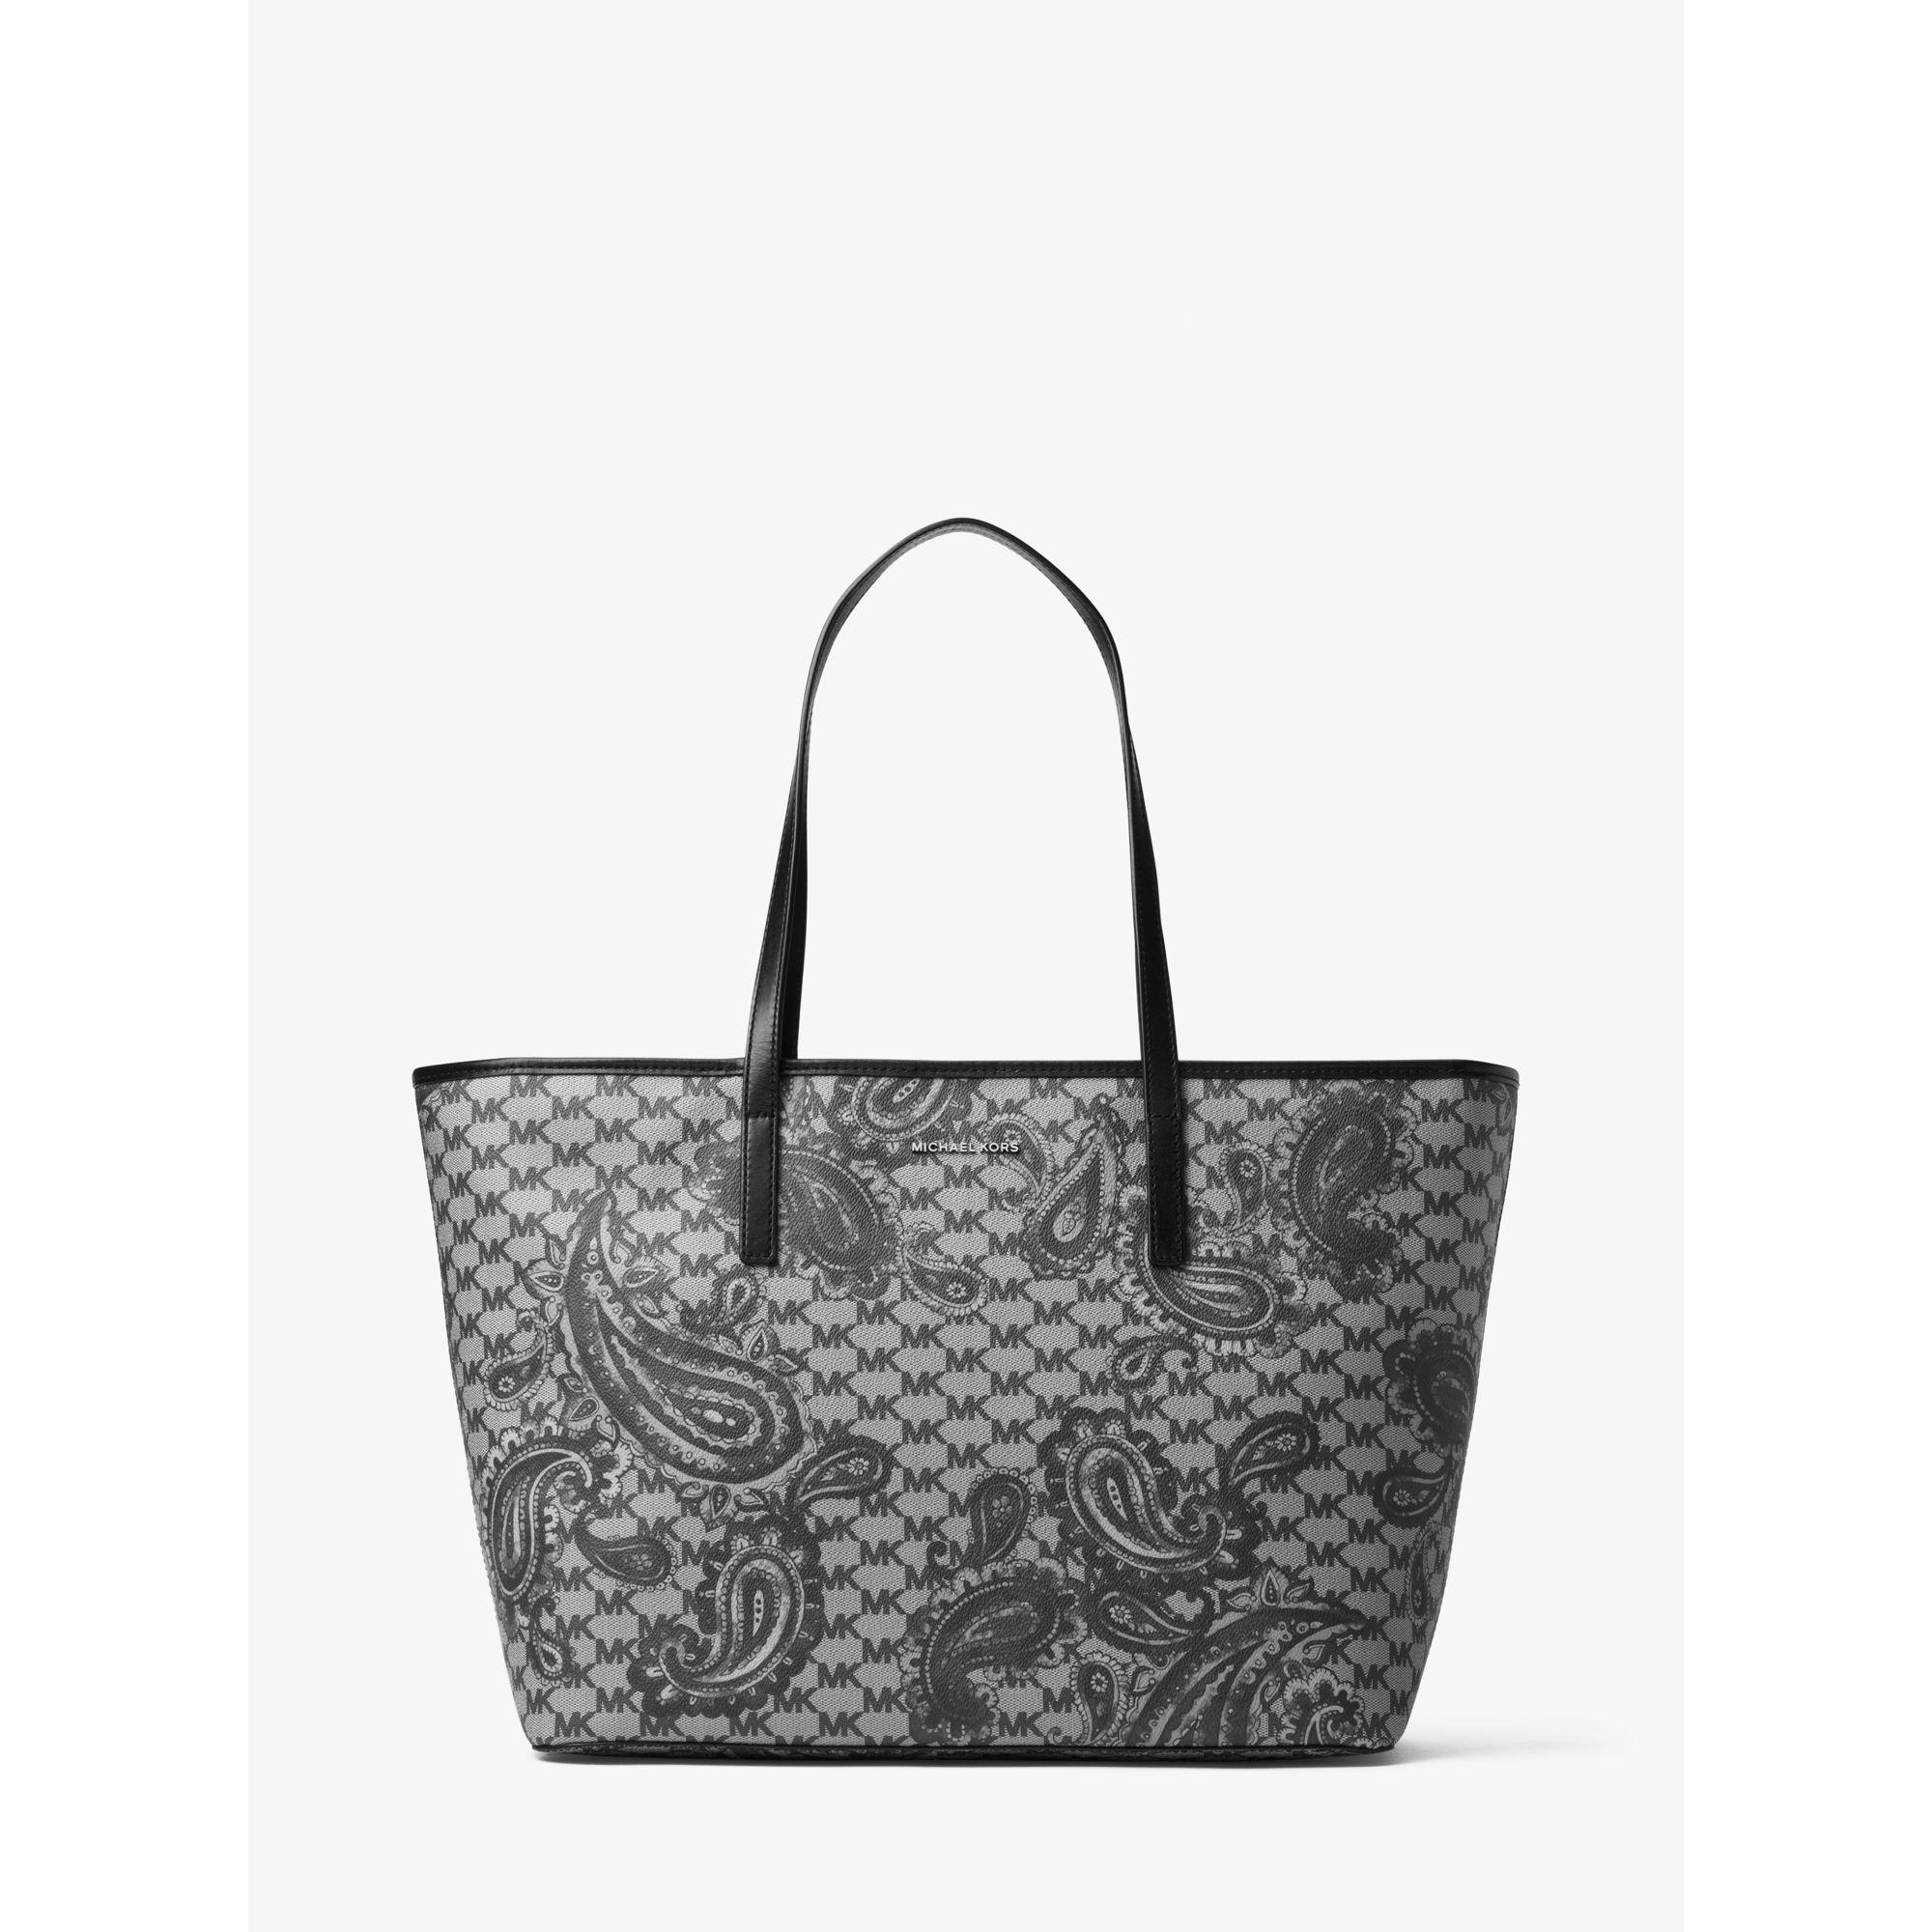 61e00982befe Michael Kors Emry Large Heritage Paisley Tote in Black - Lyst